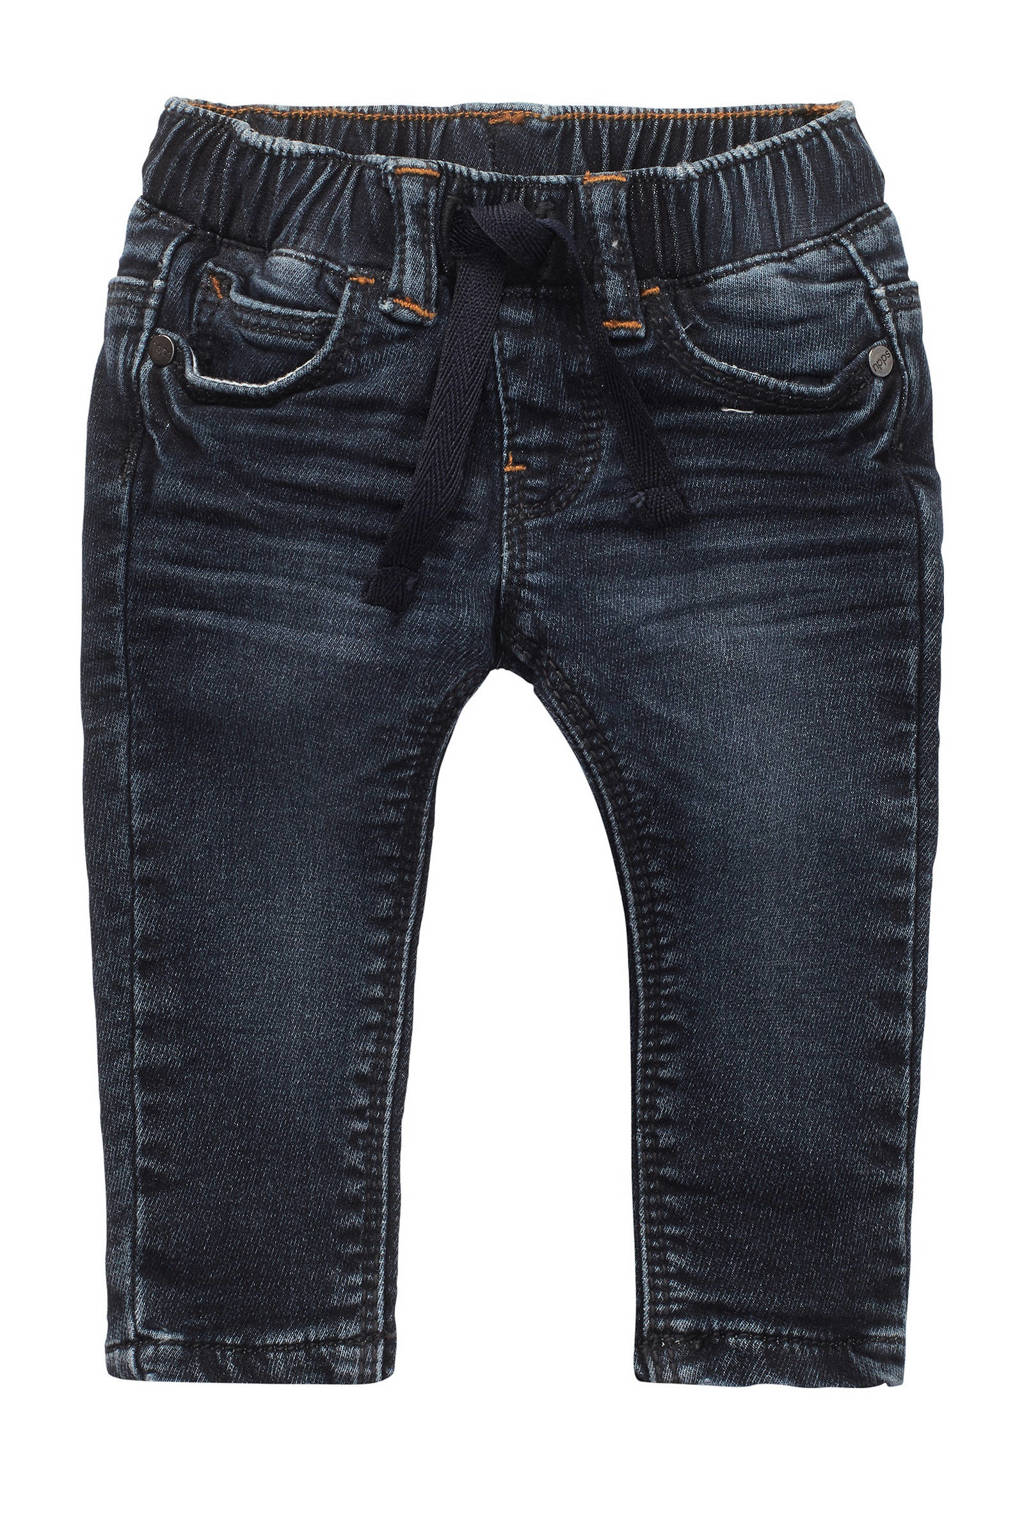 Noppies baby regular fit jeans donkerblauw, Donkerblauw